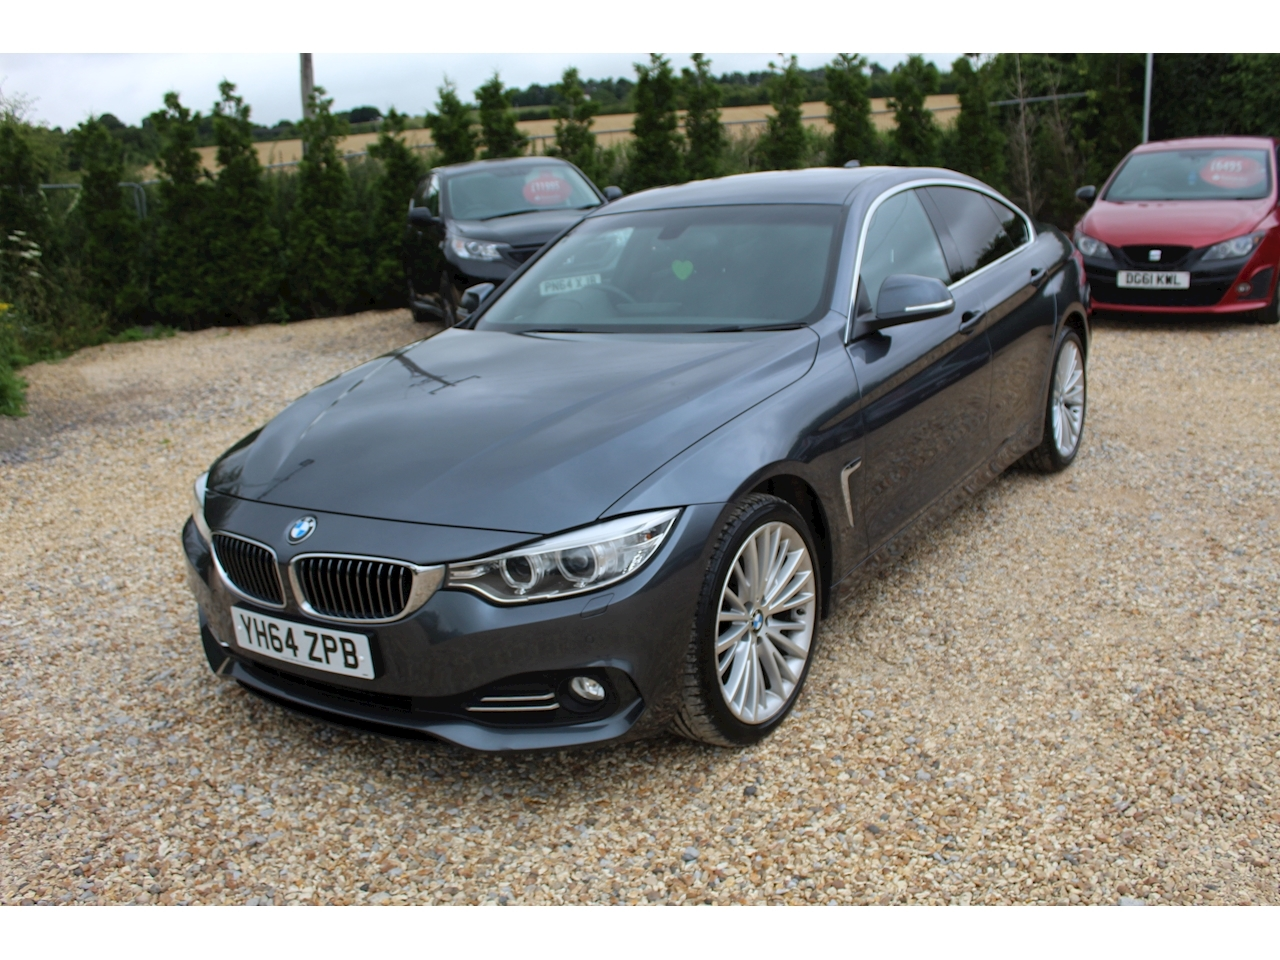 BMW 4 Series 420D Xdrive Luxury Gran Coupe Coupe 2.0 Manual Diesel